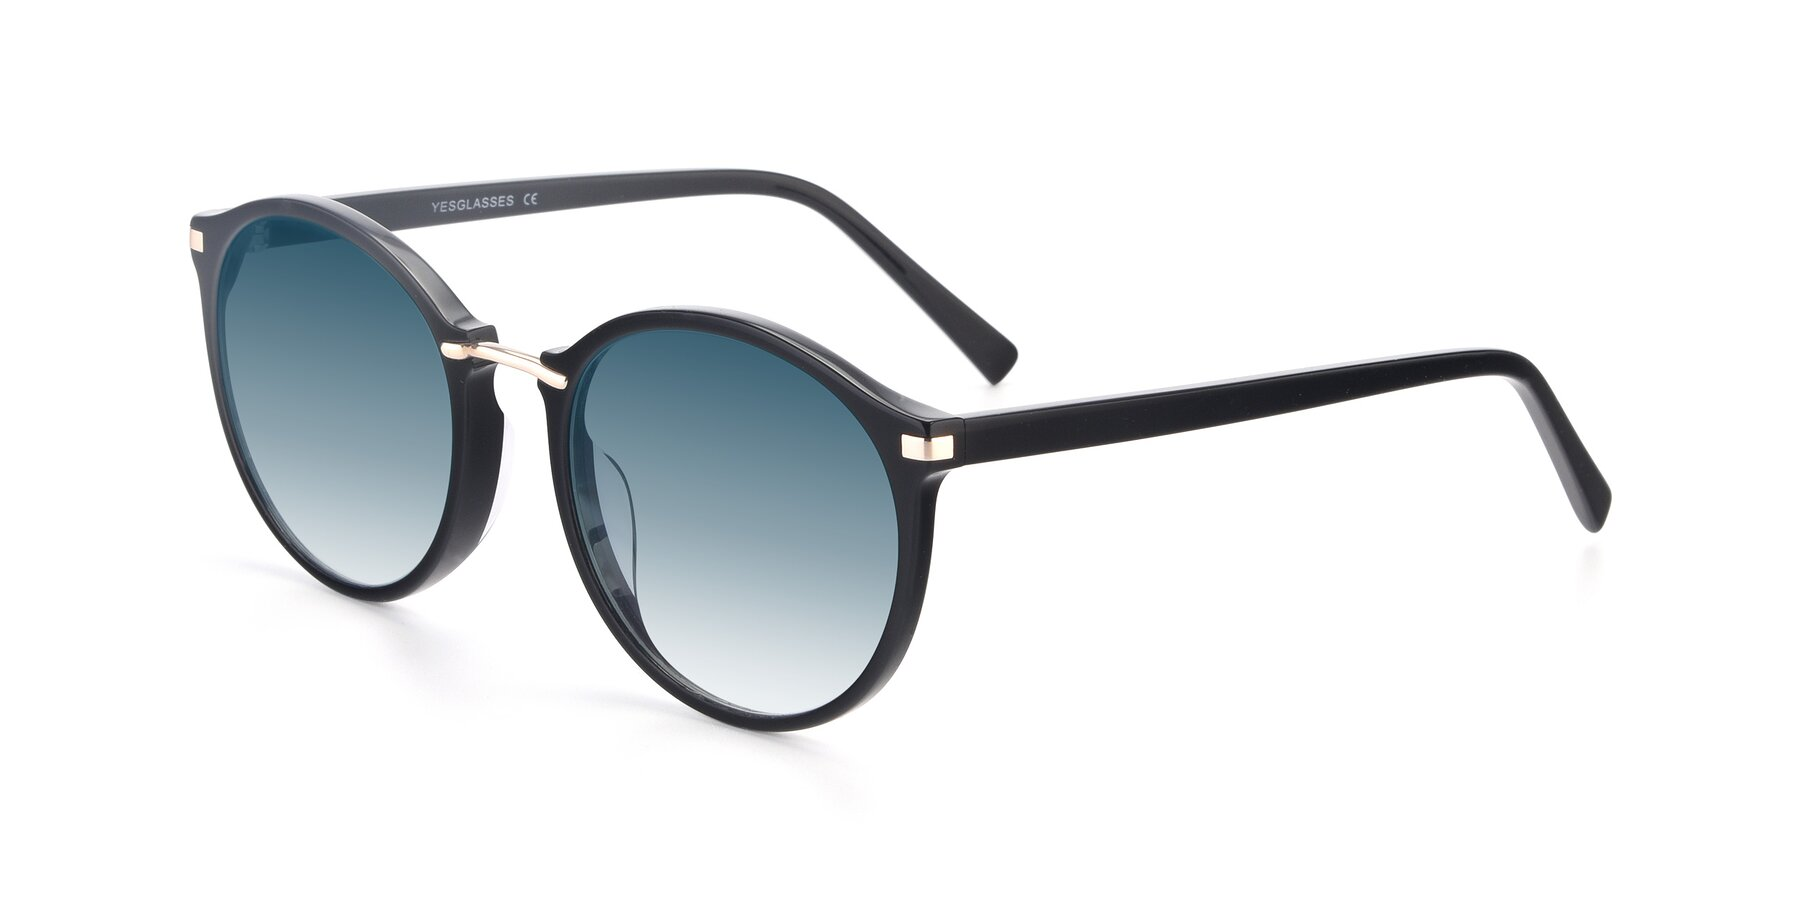 Angle of 17582 in Black with Blue Gradient Lenses